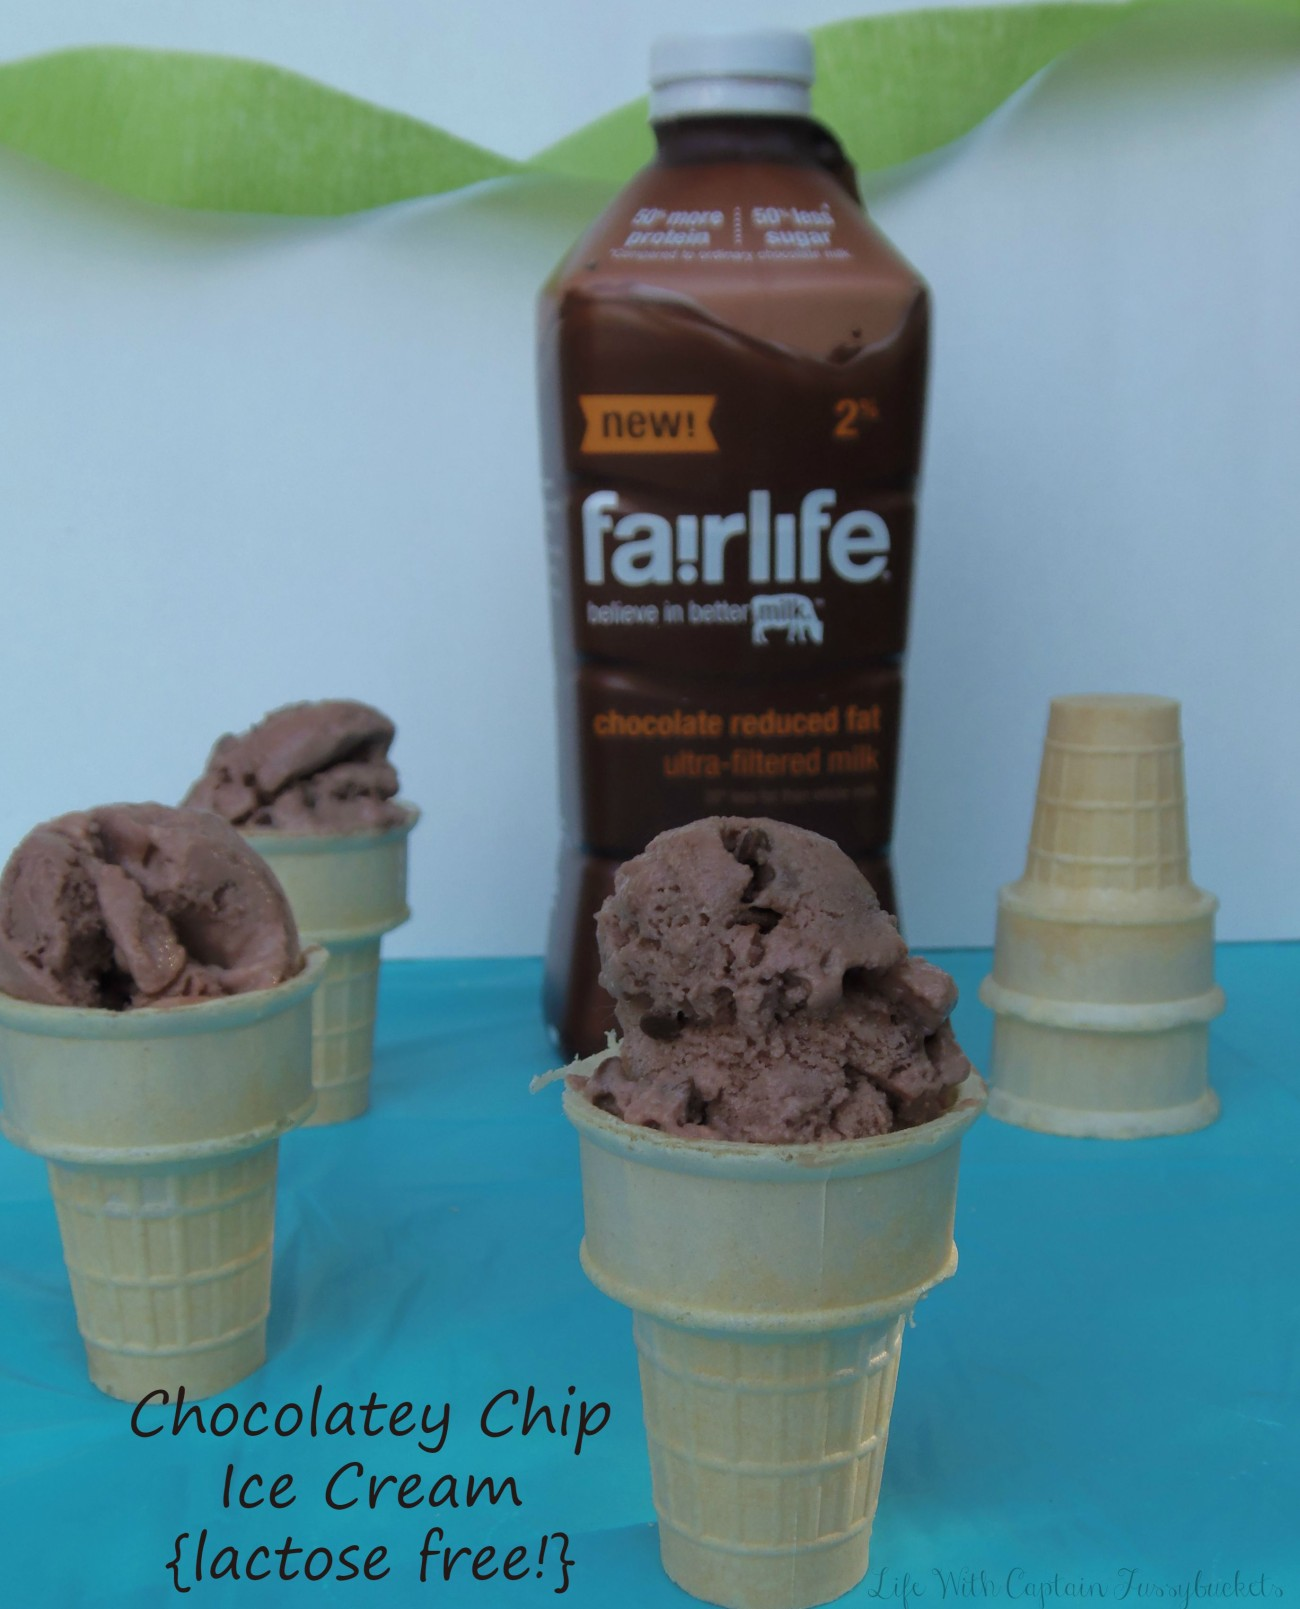 Chocolatey Chip Ice Cream #livethefairlife #CollectiveBias